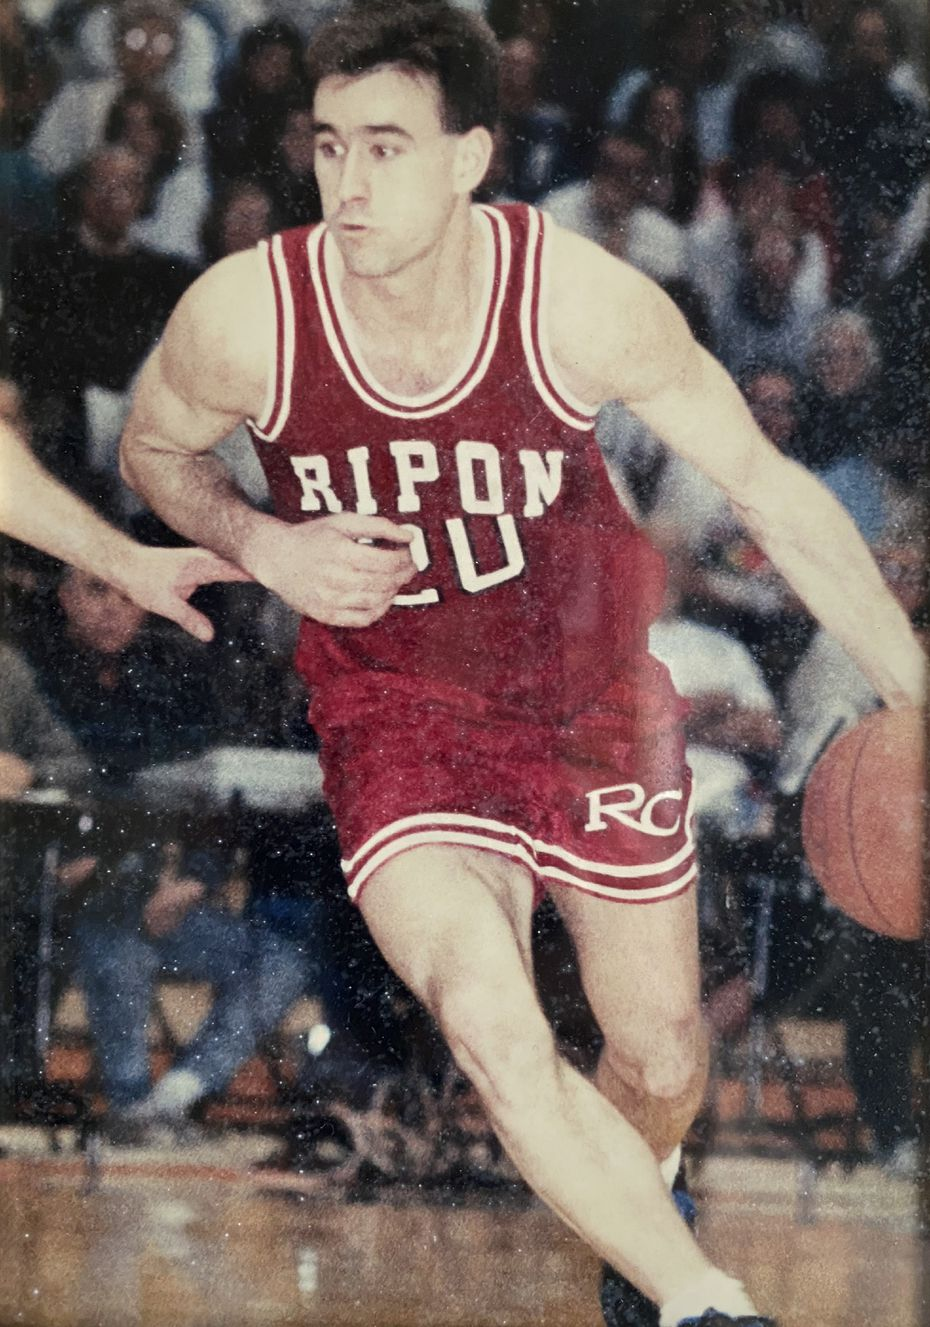 Dallas Stars CEO Brad Alberts is shown in 1992 when he was a college basketball superstar at Ripon College in Ripon, Wisc.